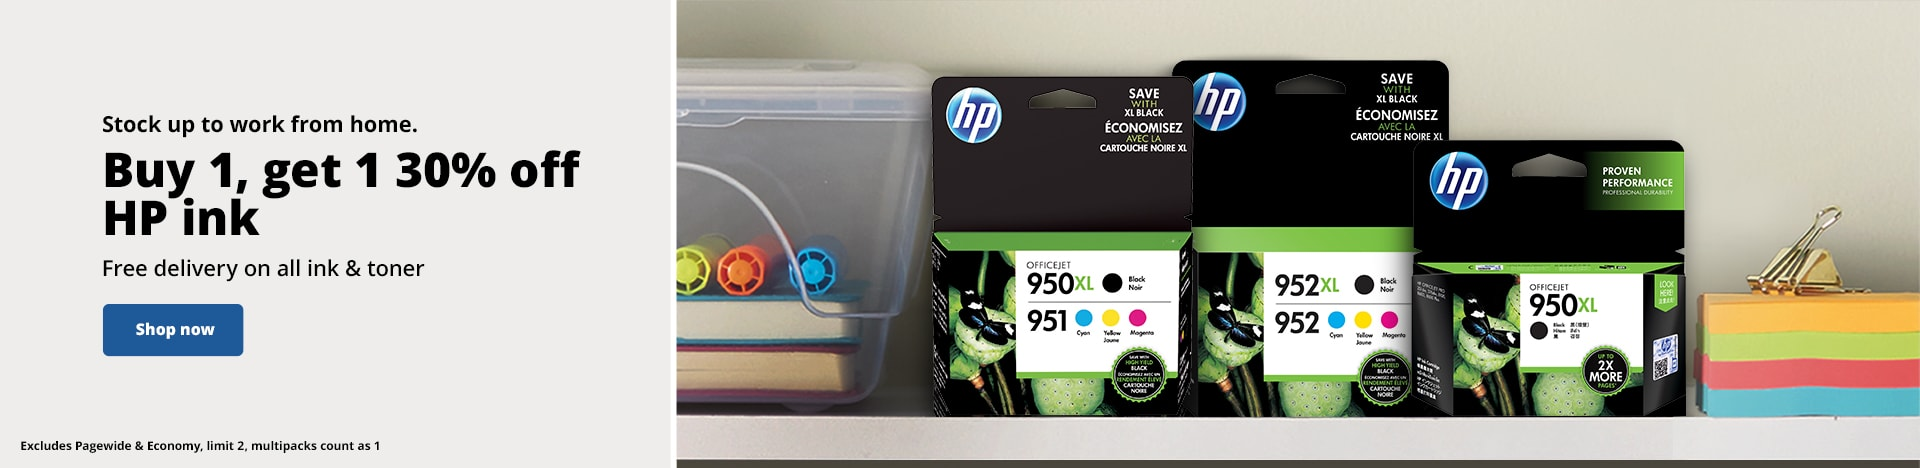 Buy 1, get 1 30% off HP ink | Free delivery on all ink & toner